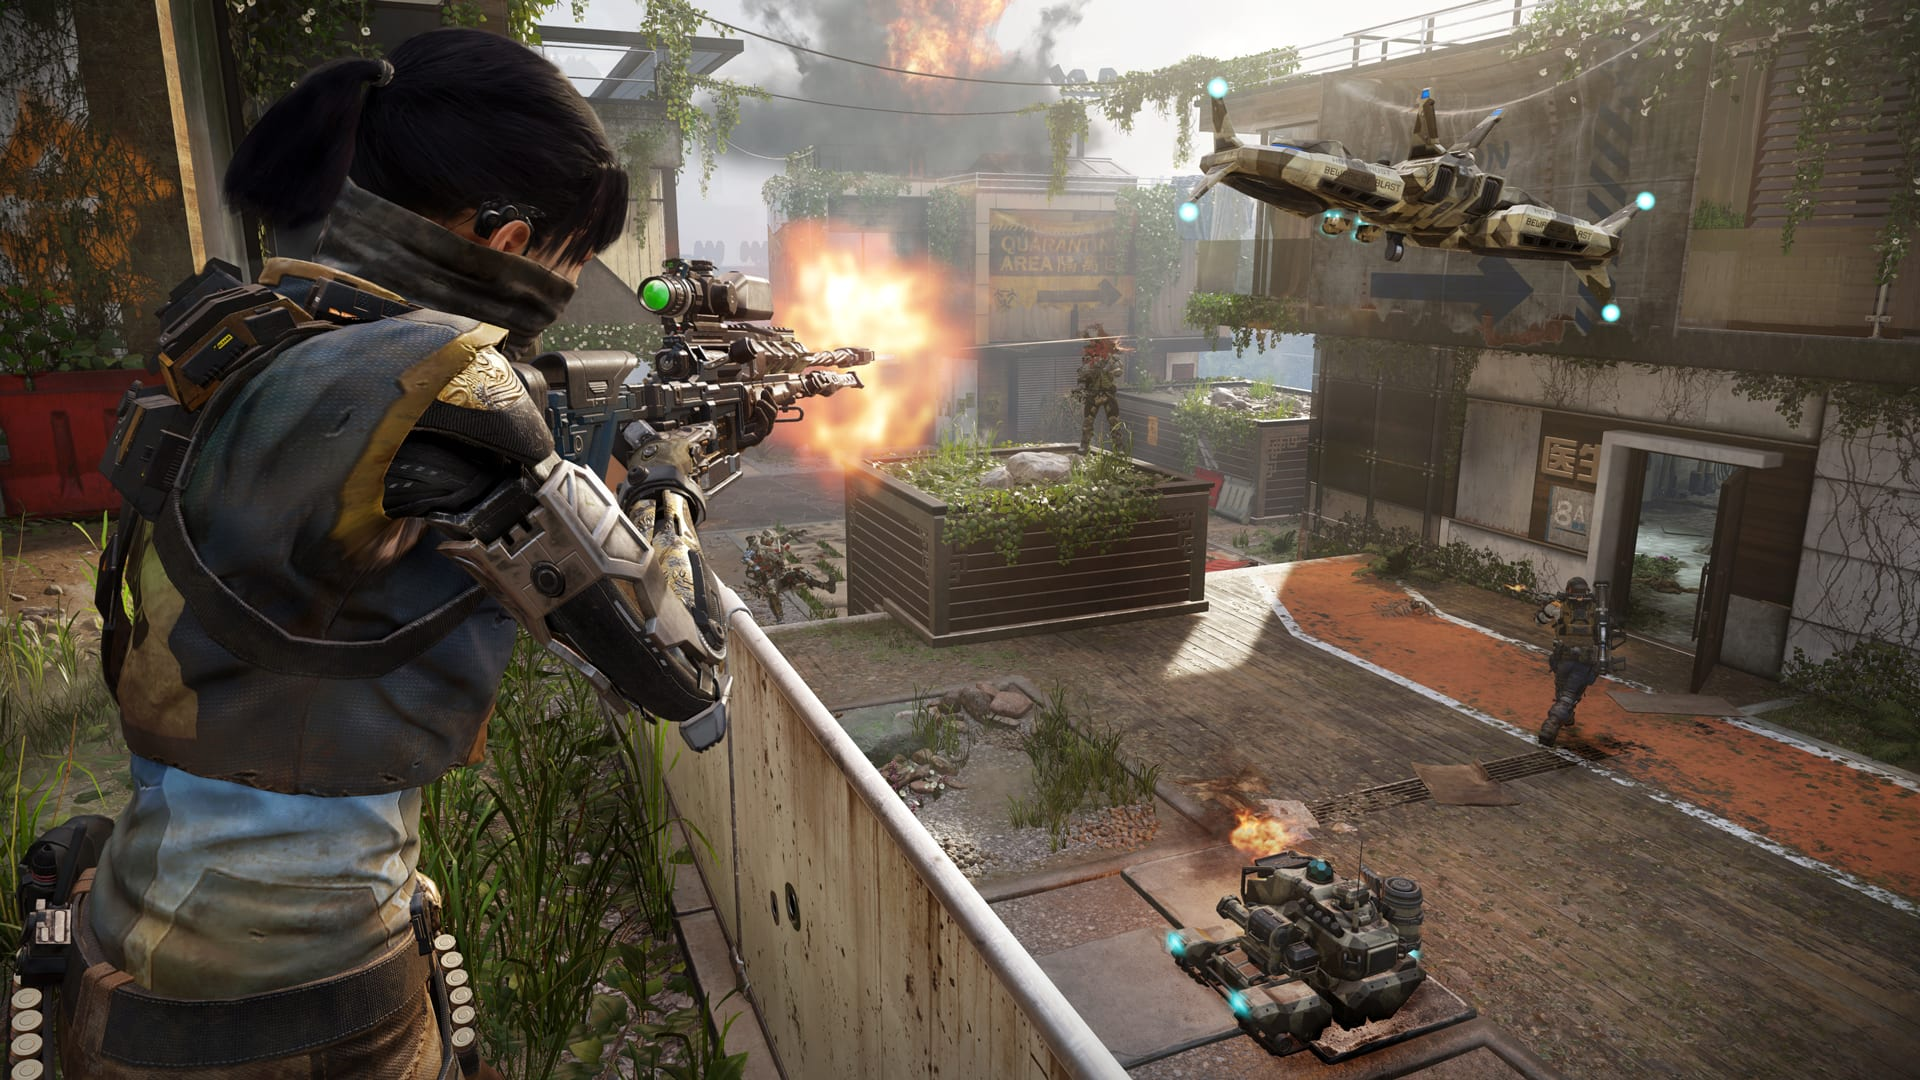 Black Ops 3' is $15 on Steam in a multiplayer-only edition